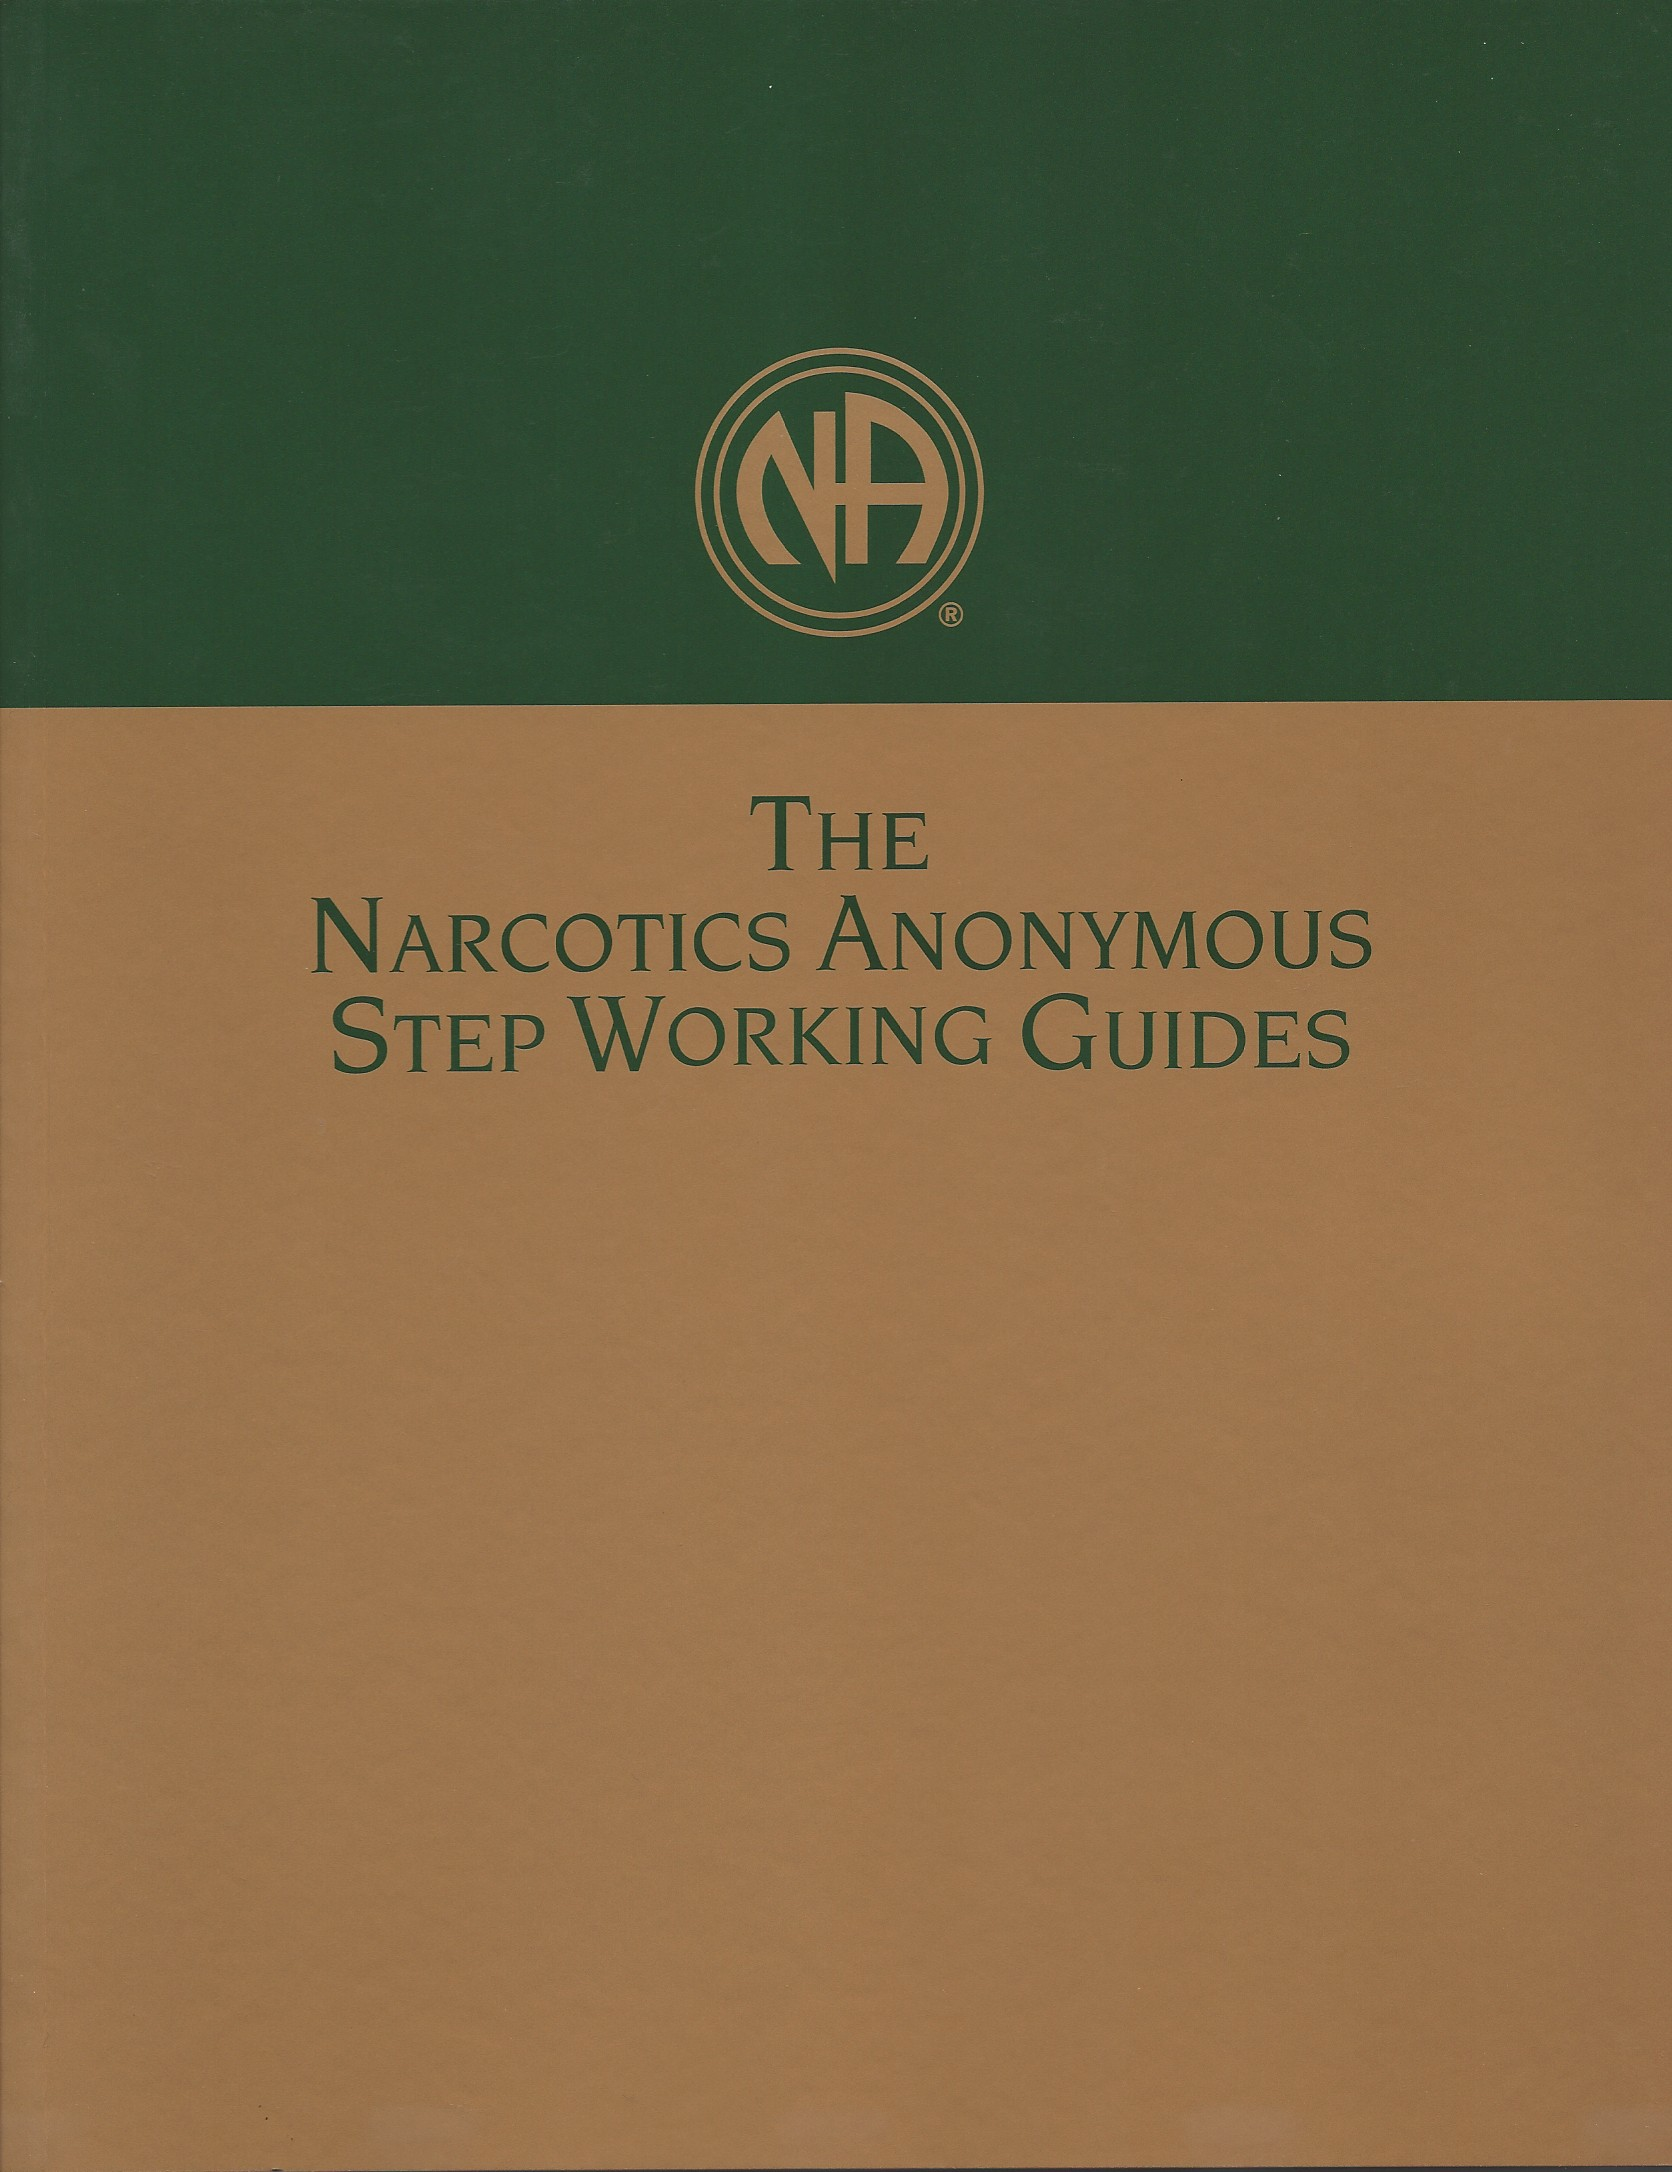 Worksheets Narcotics Anonymous Worksheets na step worksheets sharebrowse collection of narcotics anonymous 12 steps sharebrowse